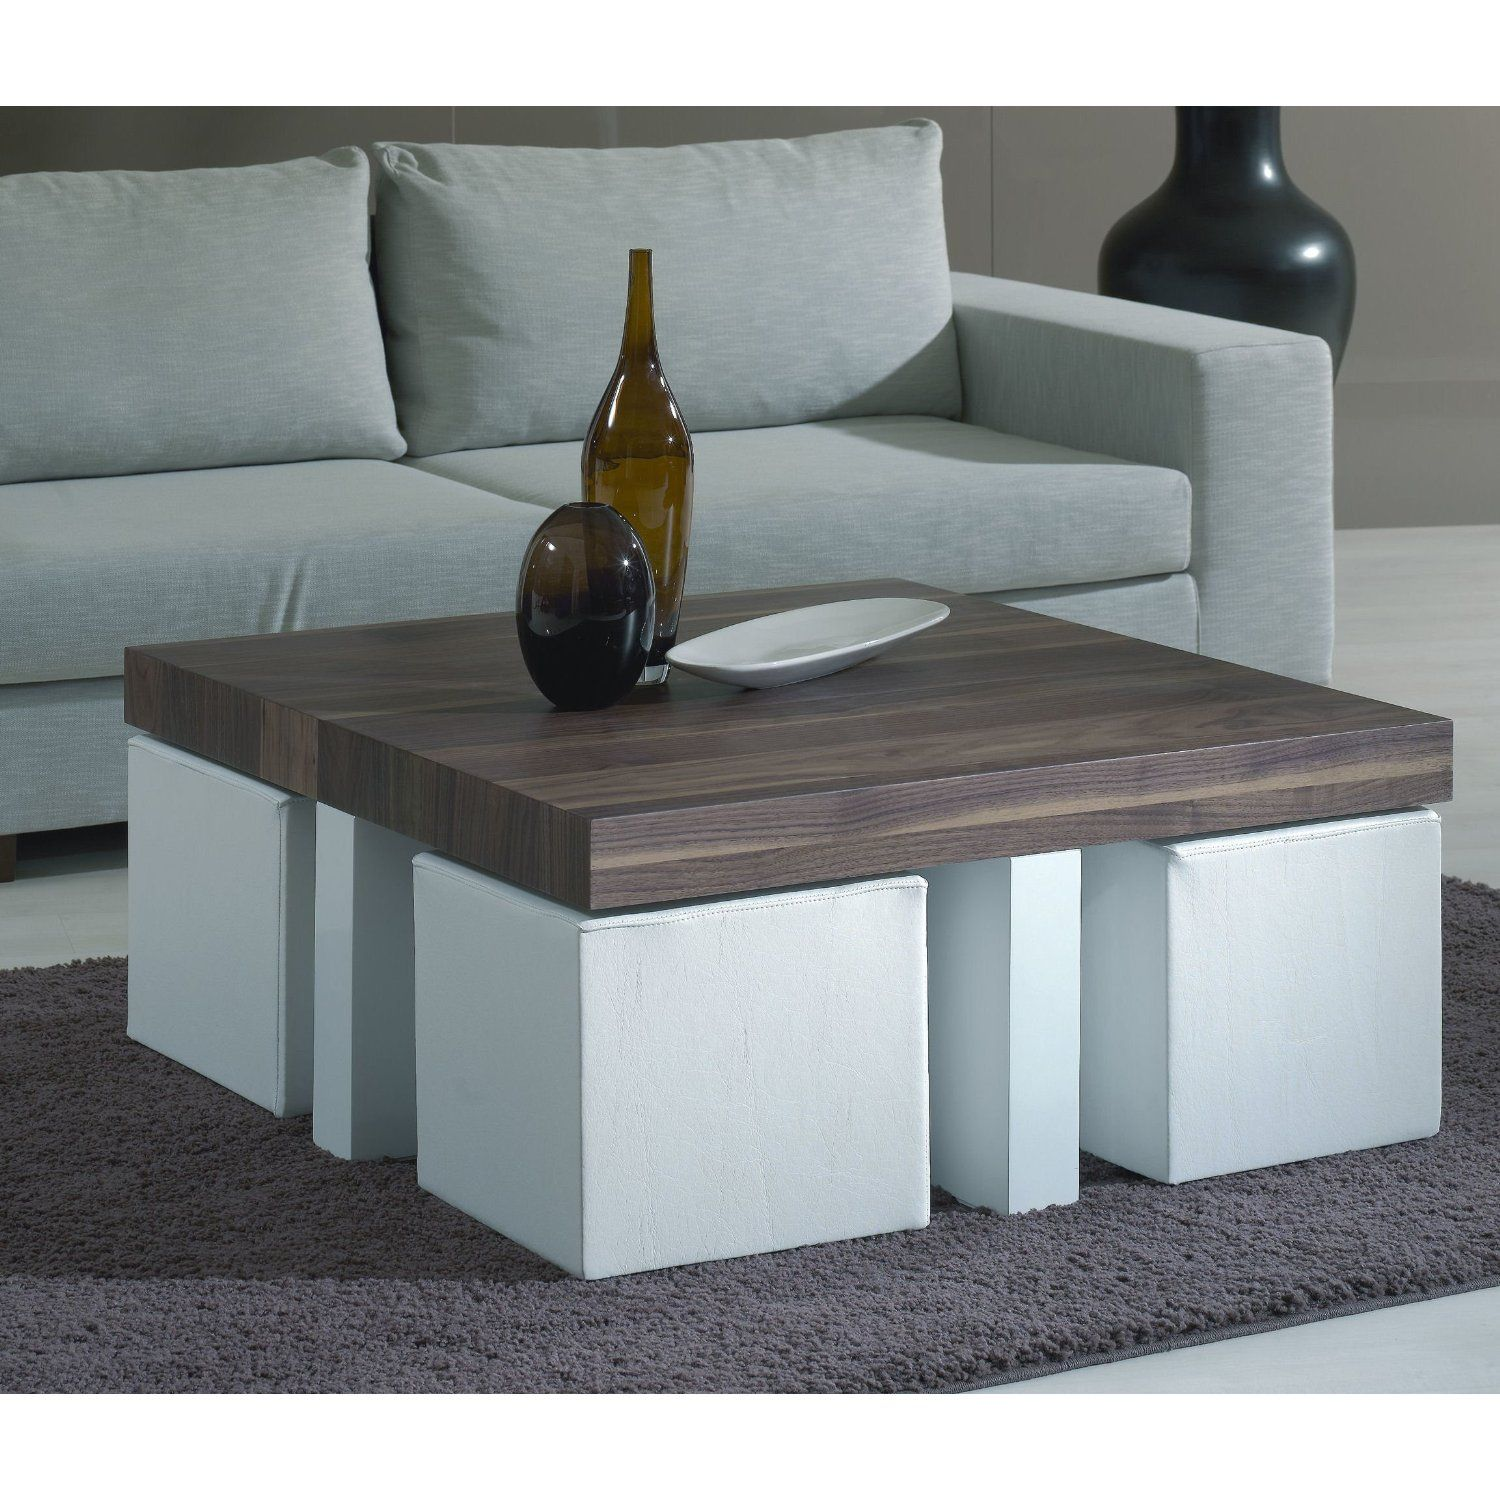 Coffee Table With Stools Love This Idea For Stools Tucked Under A Coffee Table More Seating